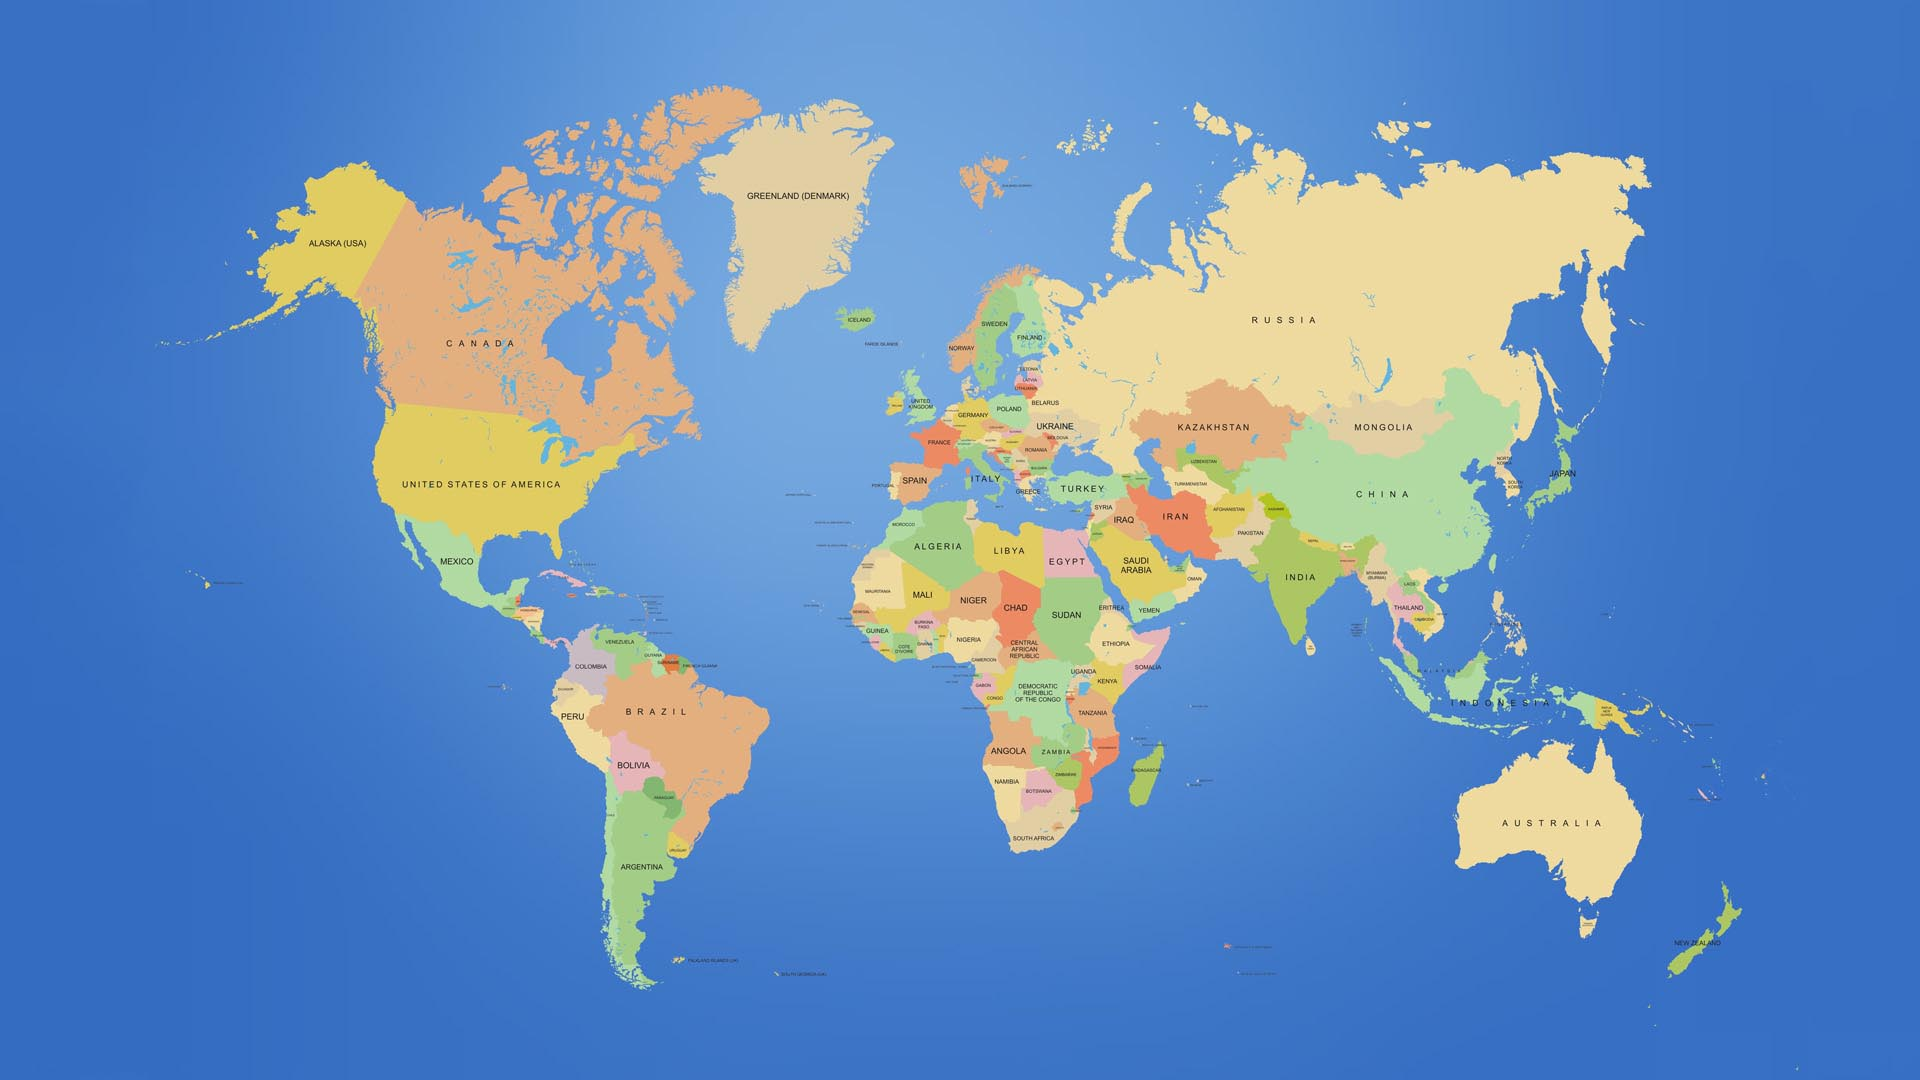 World Political Map HD Wallpaper